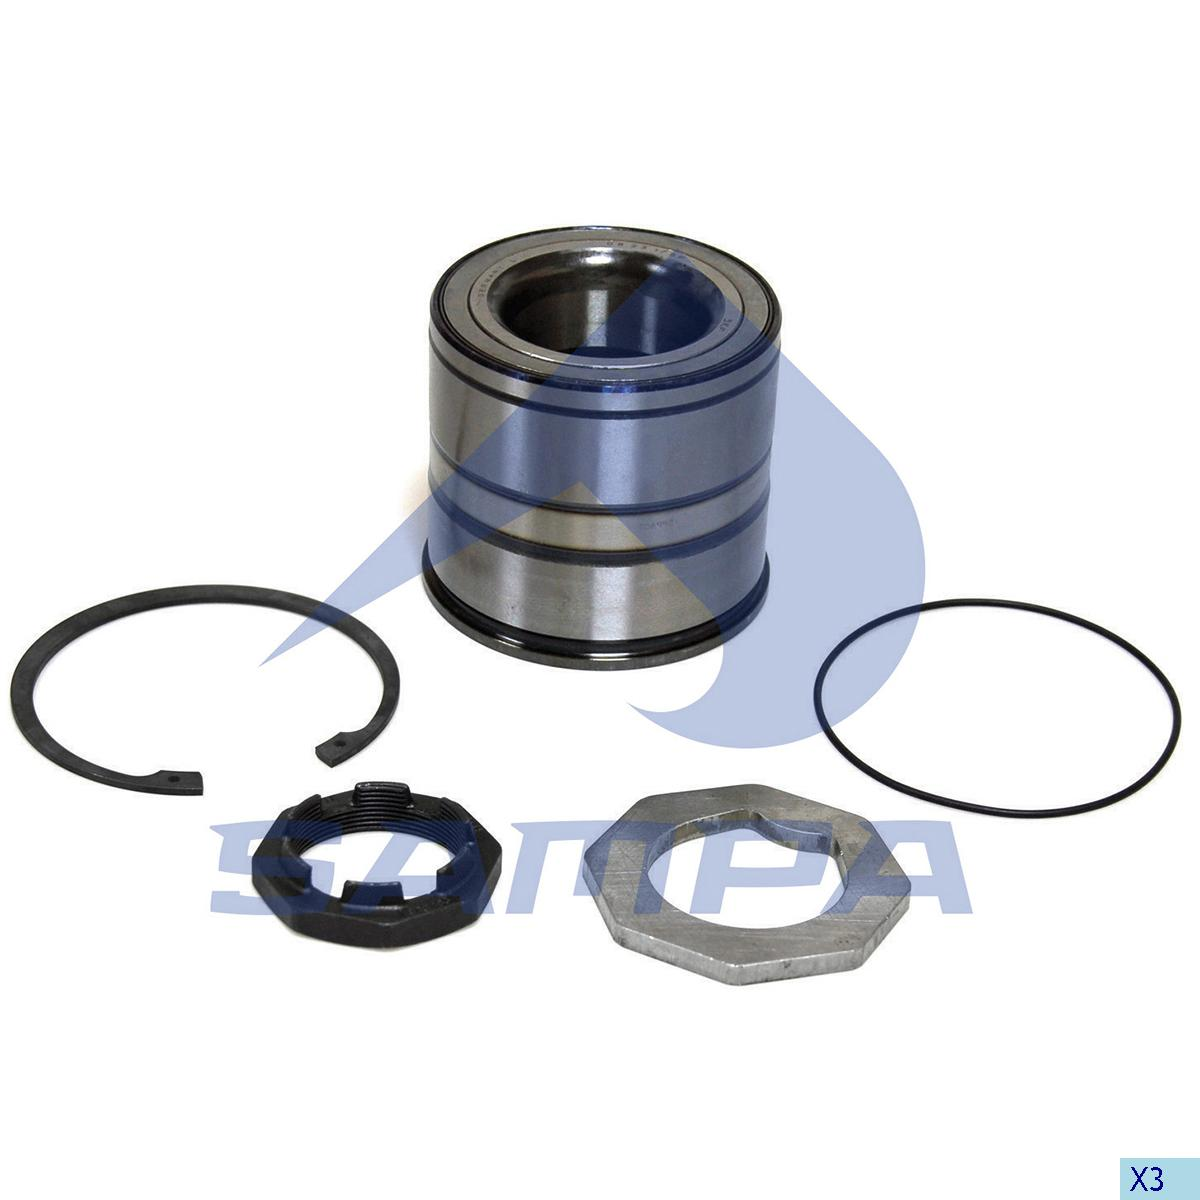 Repair Kit, Wheel Hub, Scania, Power Unit